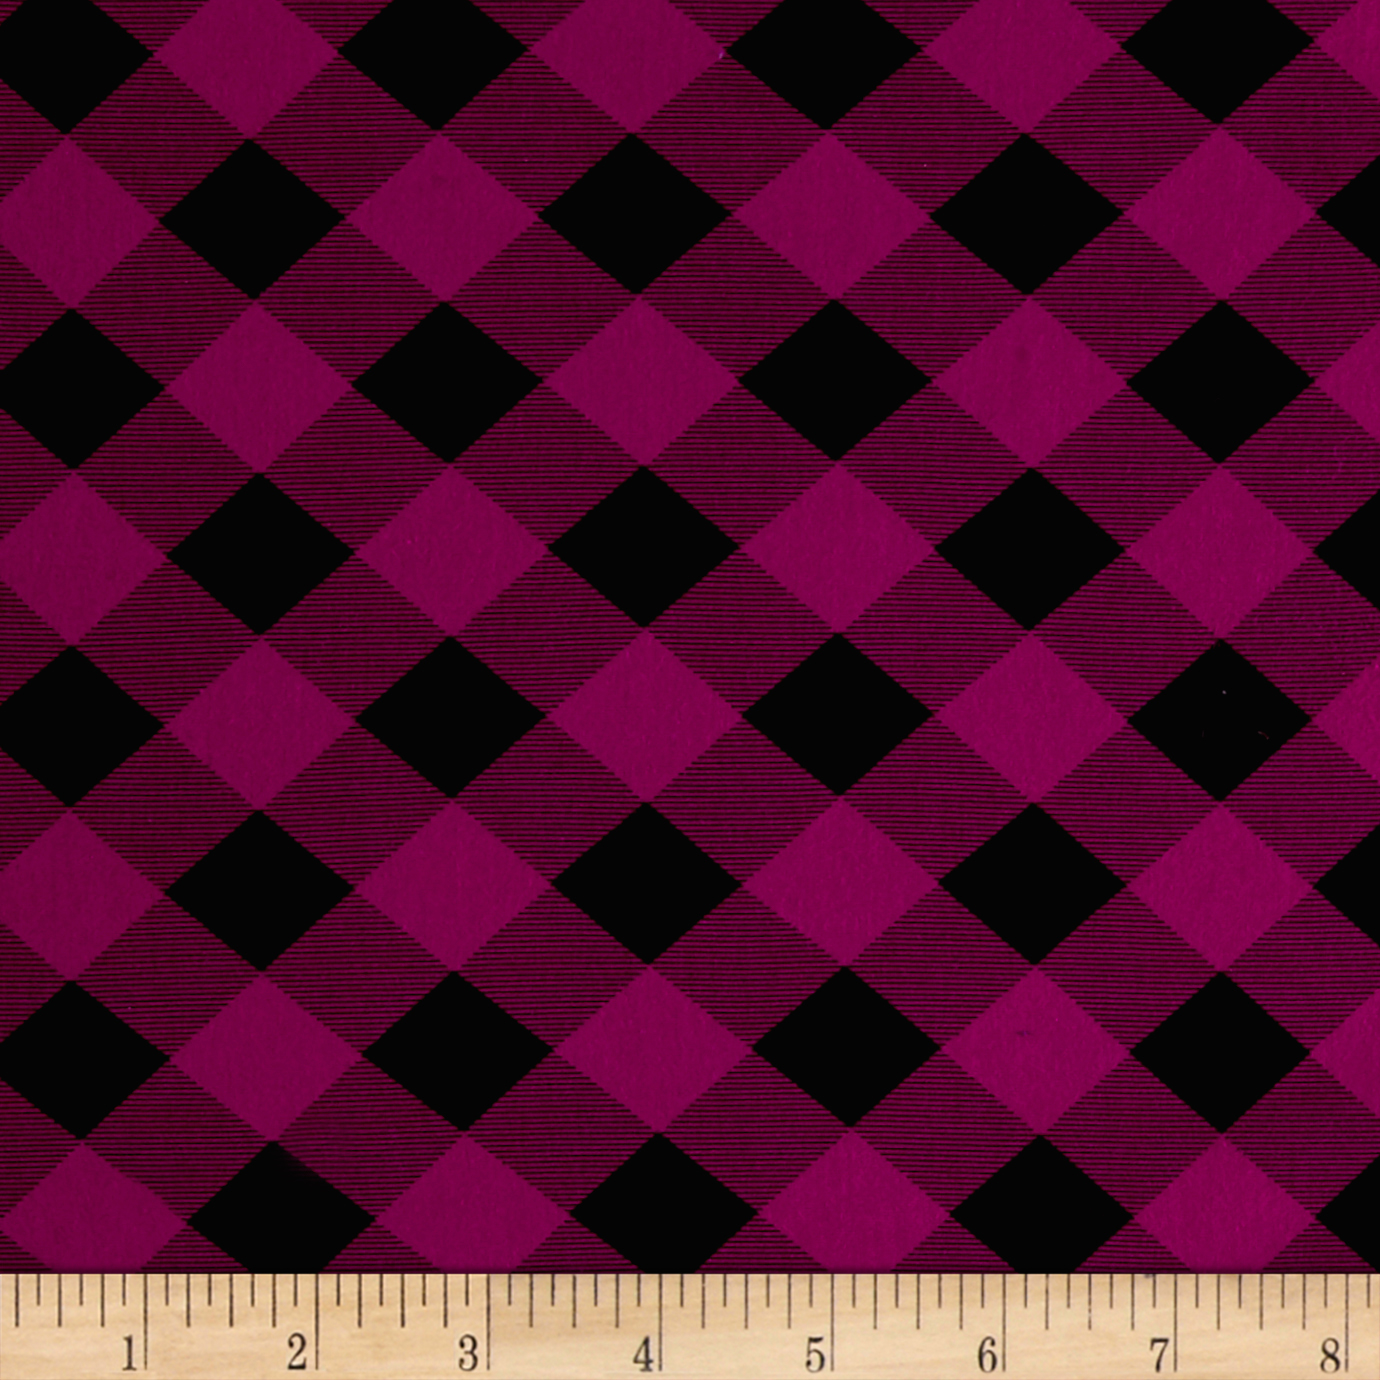 Printed Jersey Knit Black Checker Plaid on Magenta Fabric by Fabric Merchants in USA